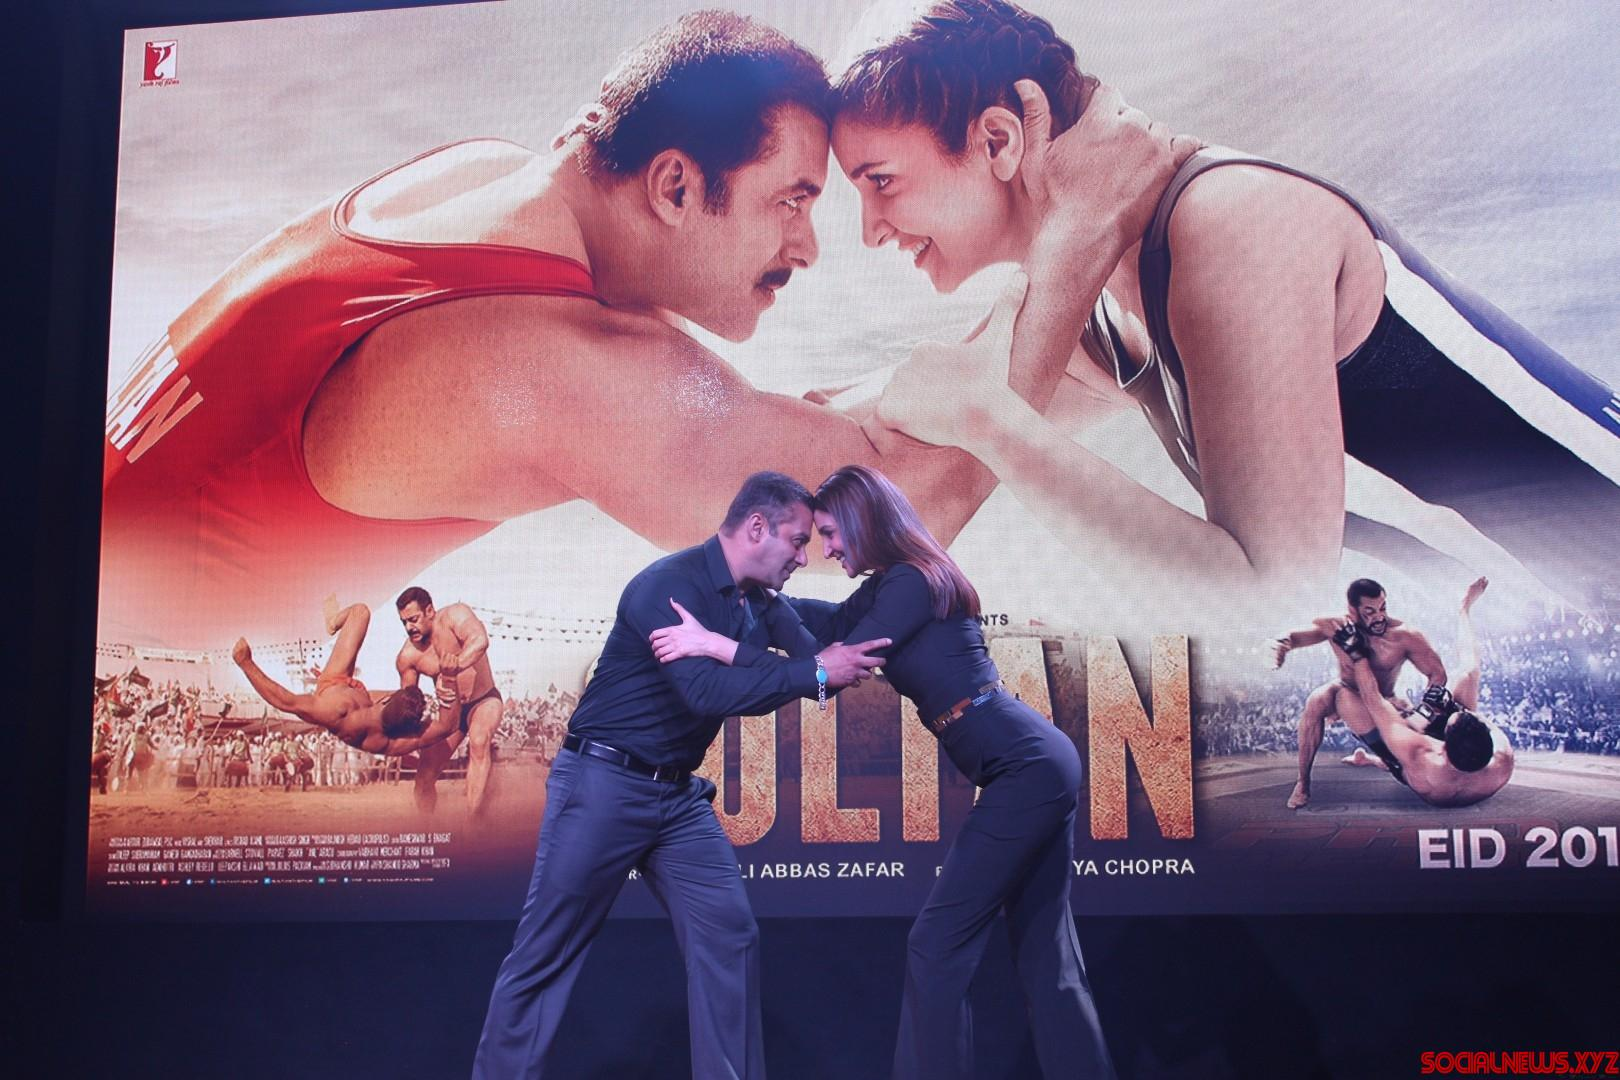 'Sultan' raises the bar with over Rs 180 crore in opening weekend